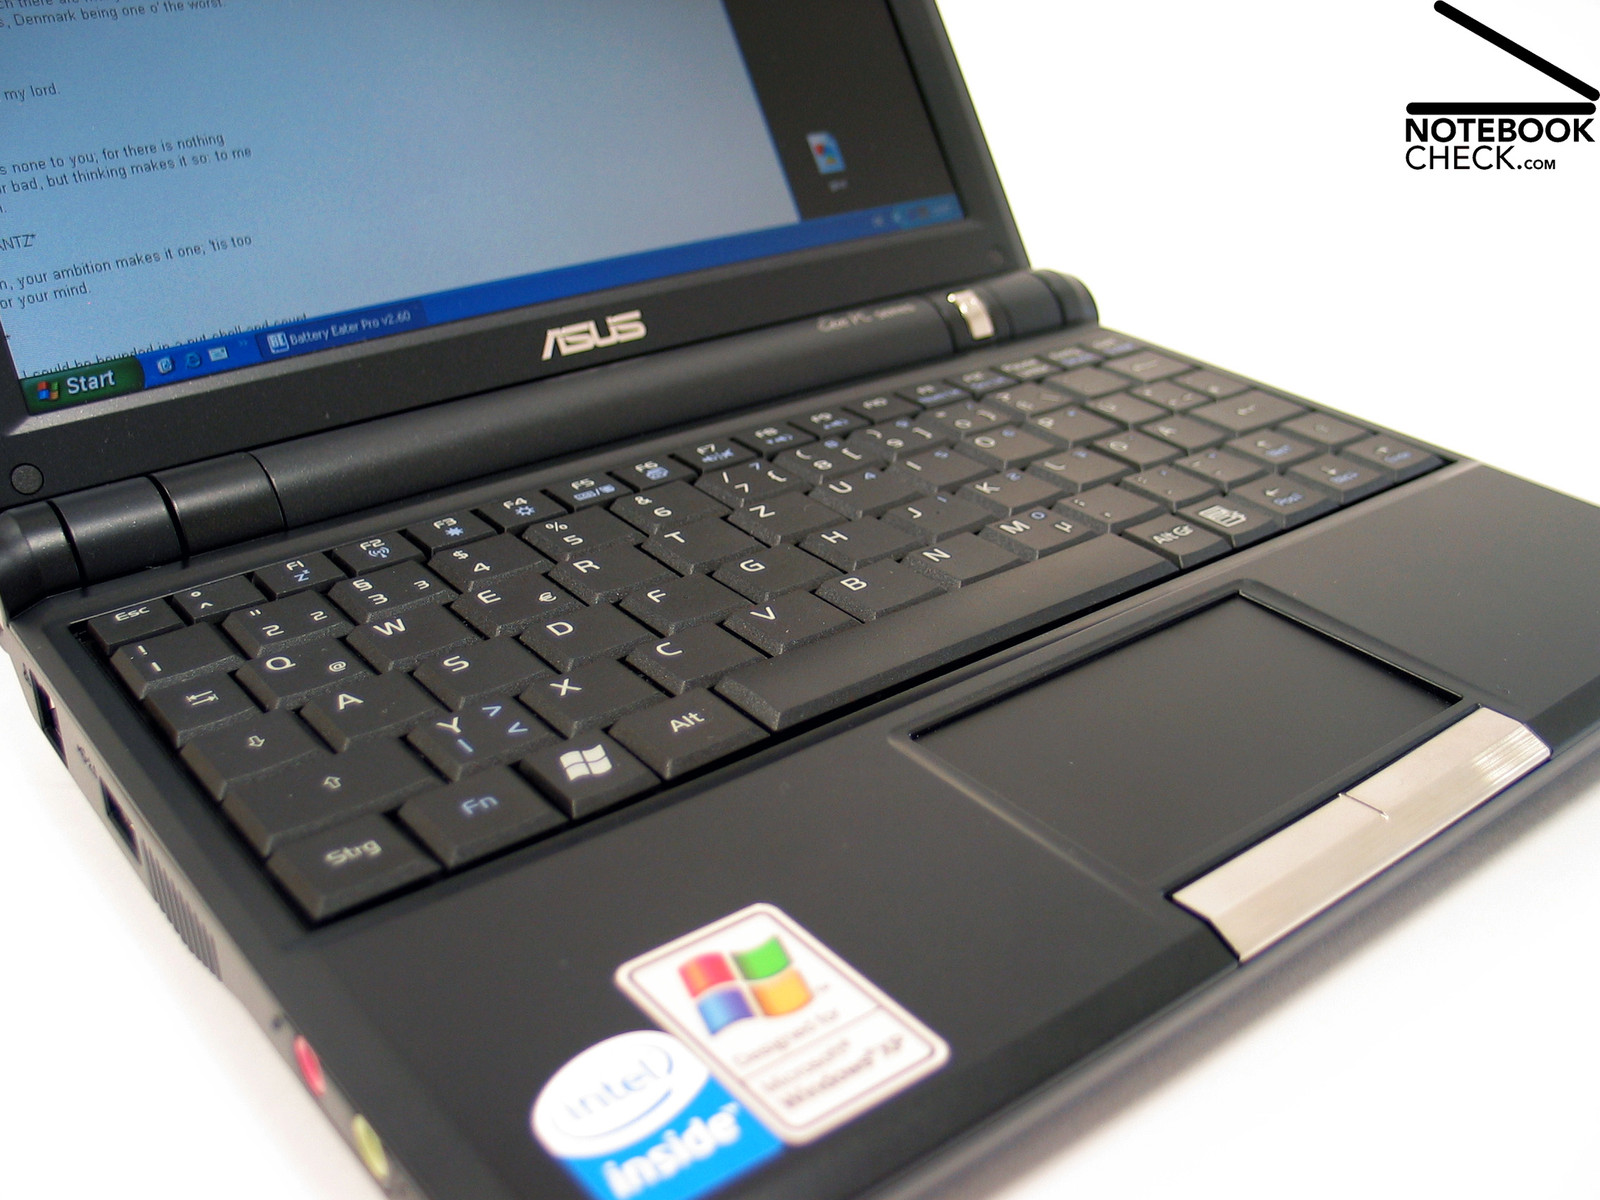 Asus Eee PC 900HA Netbook LAN Vista